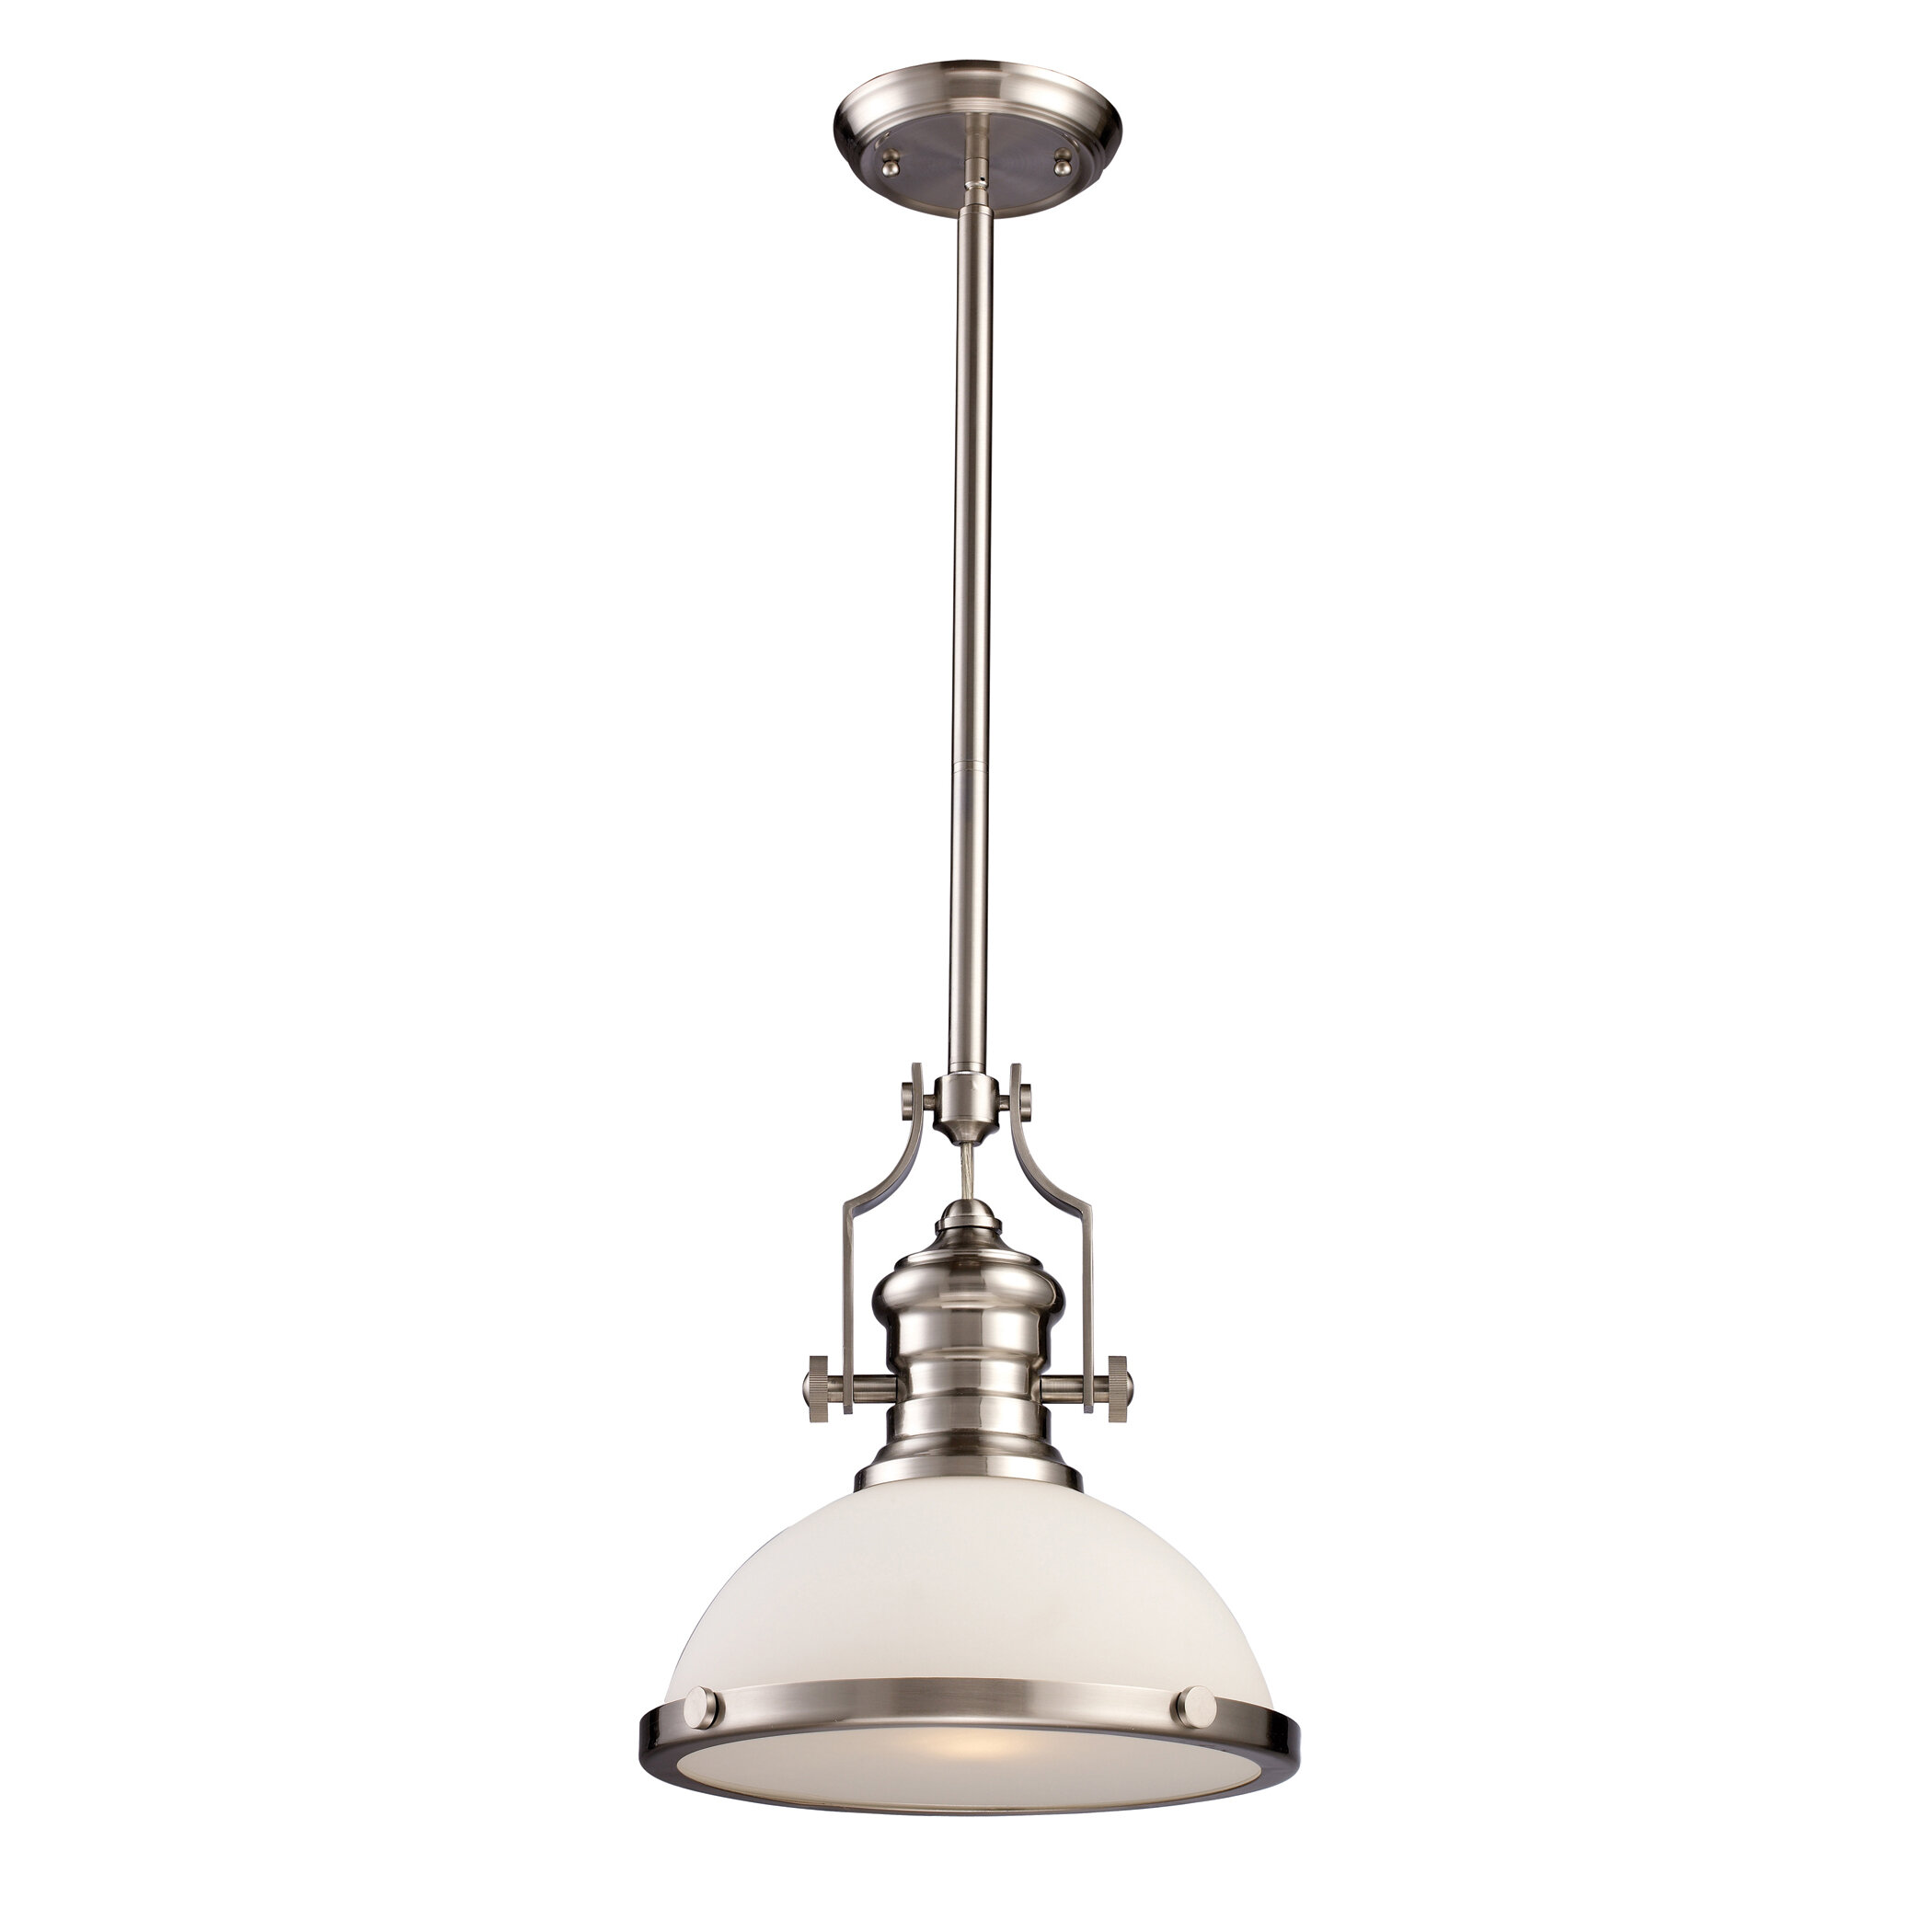 uk nickel all odiham view invt sphere resp pendant laura large light lighting ashley